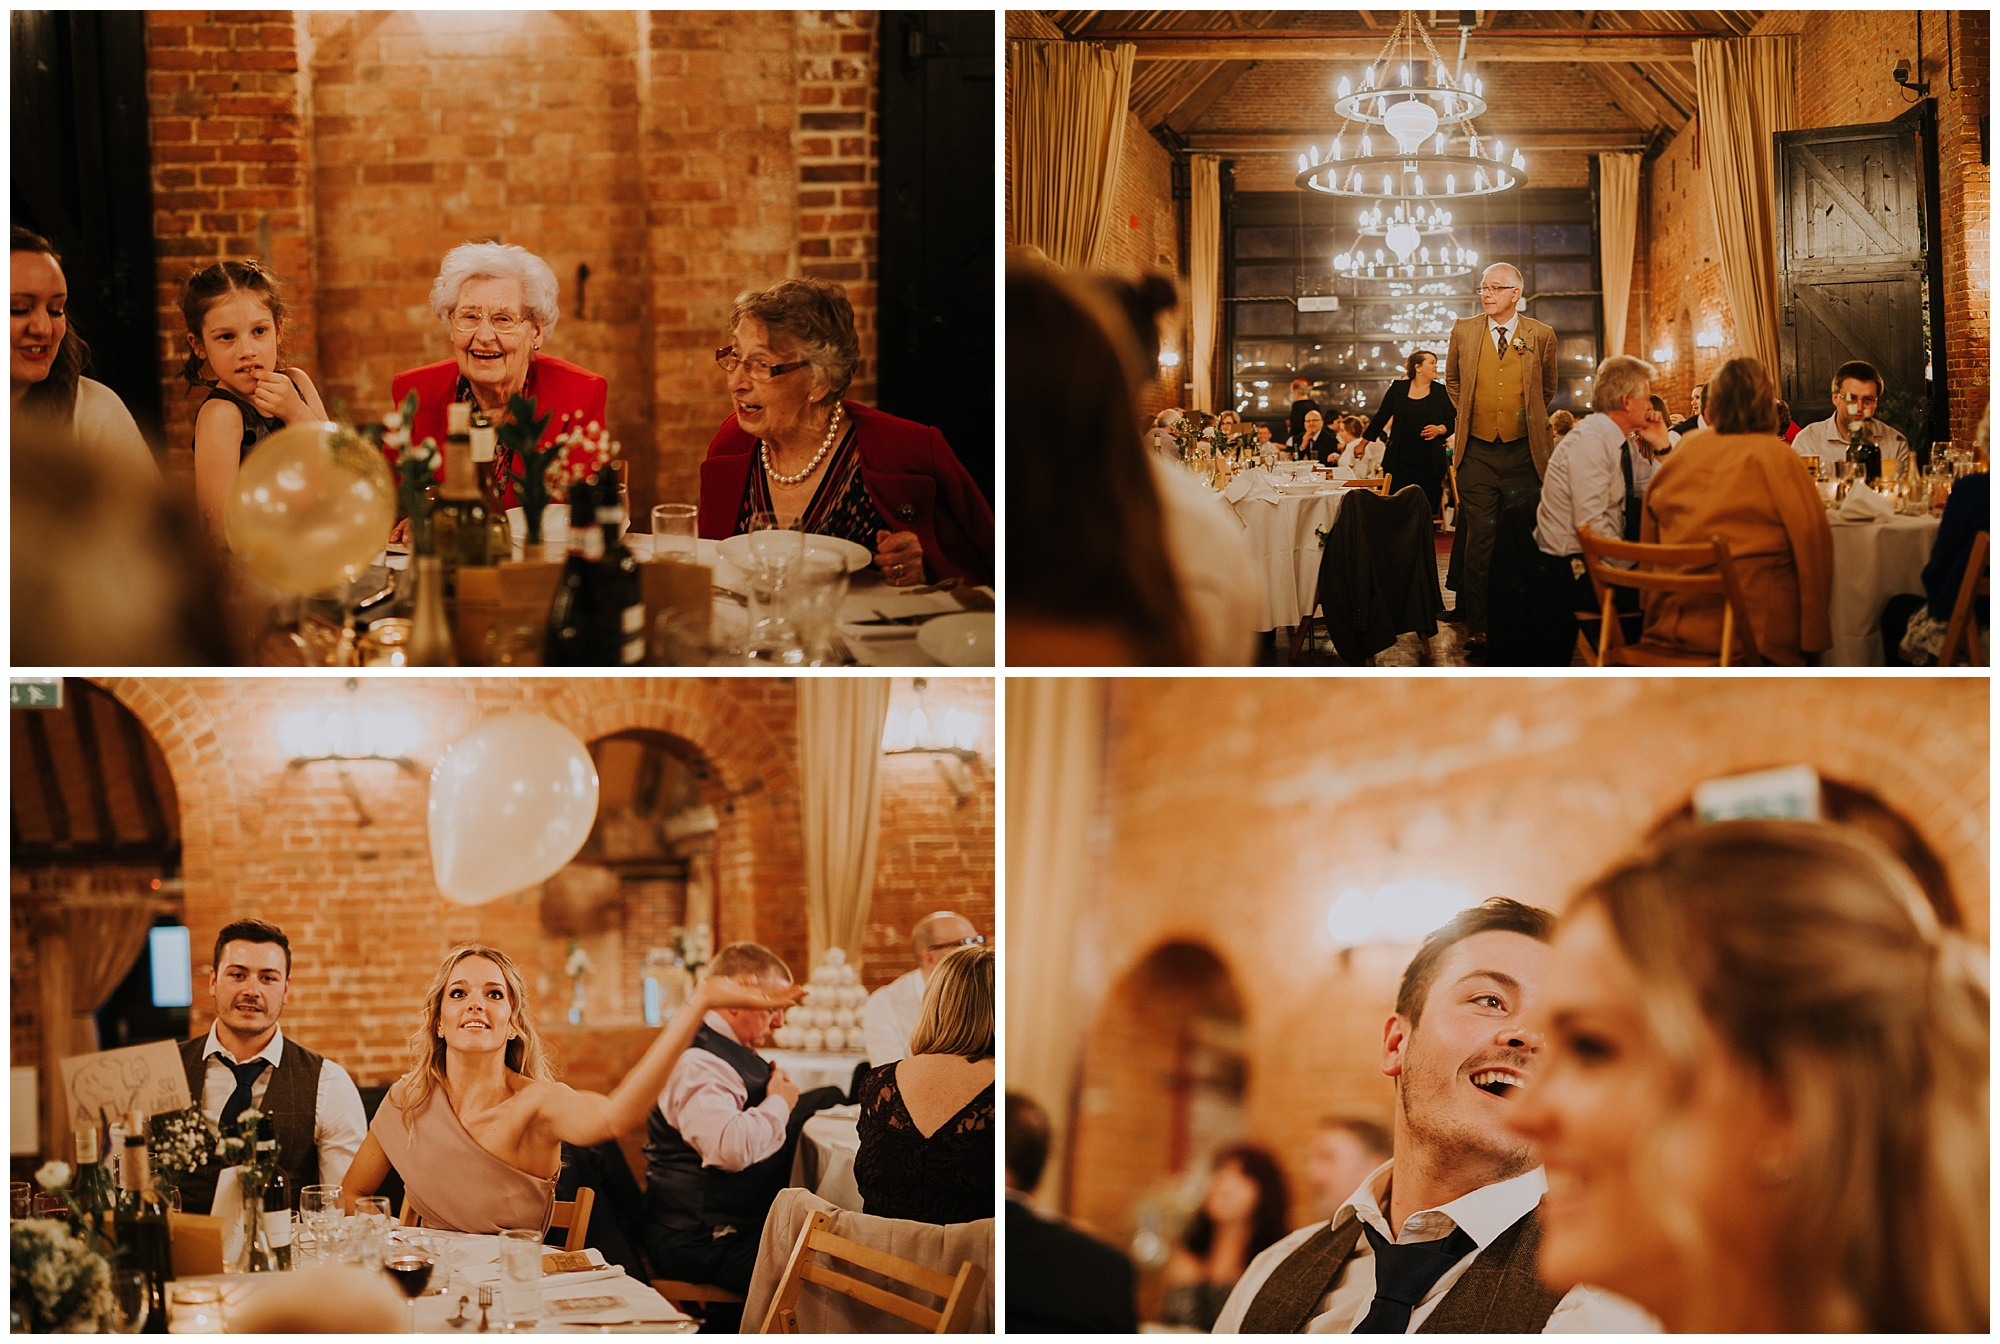 guests and laughter at a wedding reception